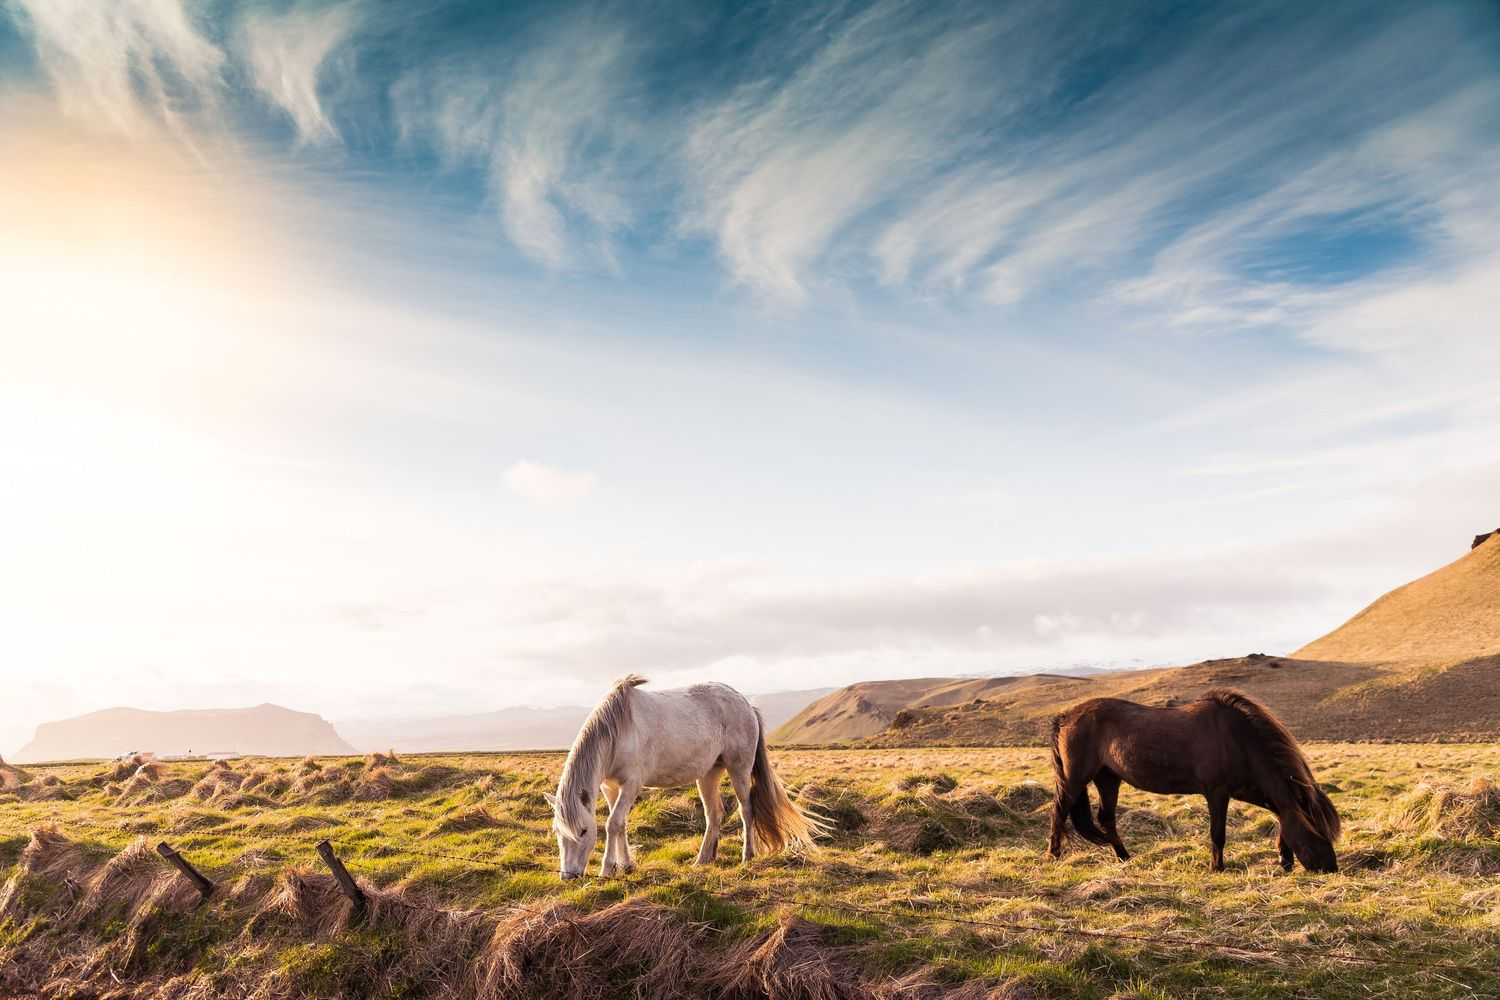 Icelandic horses grazing in a field during Iceland elopement